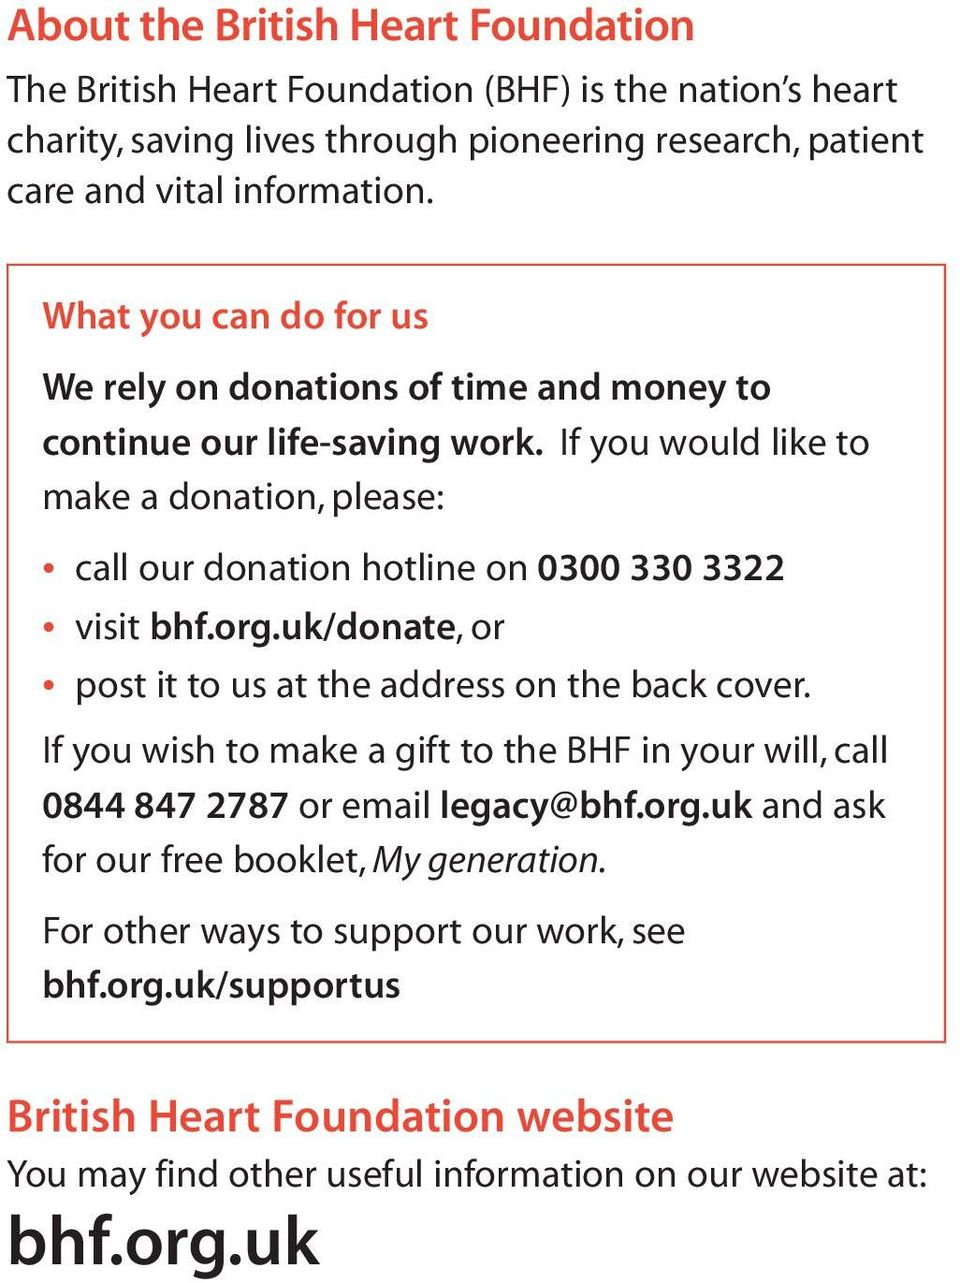 If you would like to make a donation, please: call our donation hotline on 0300 330 3322 visit bhf.org.uk/donate, or post it to us at the address on the back cover.